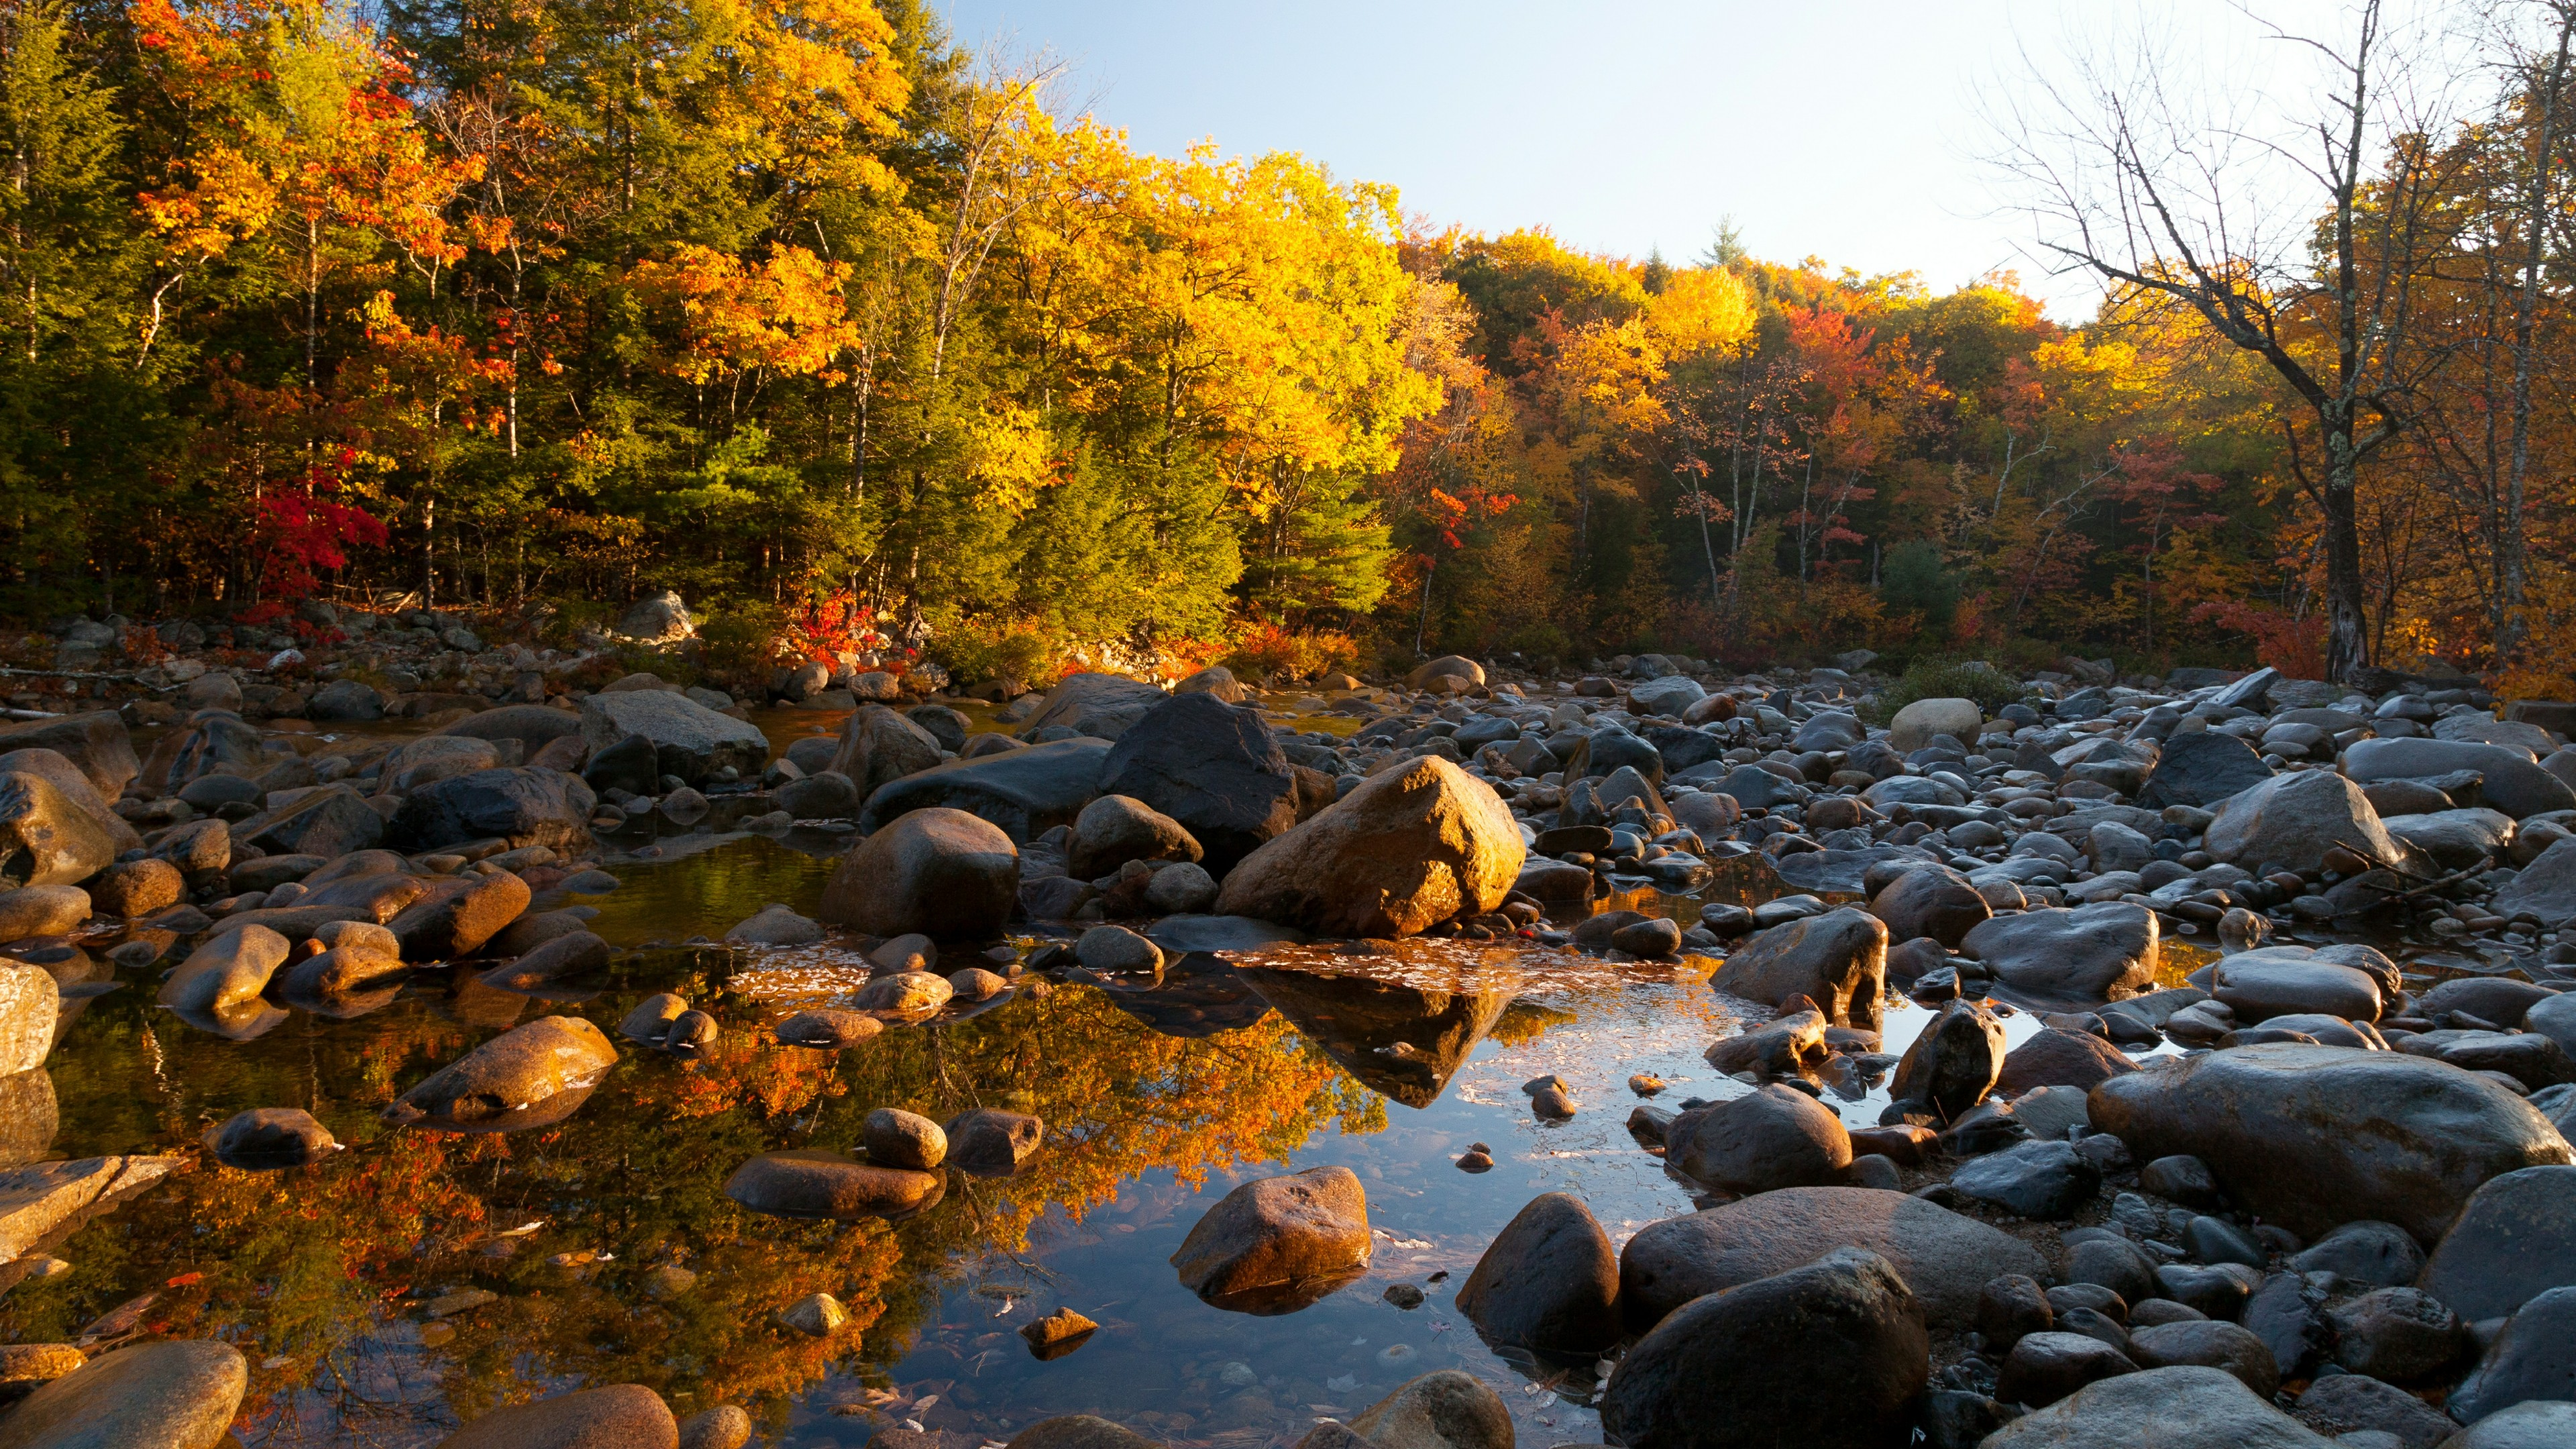 Stony stream bad in the fall forest wallpaper